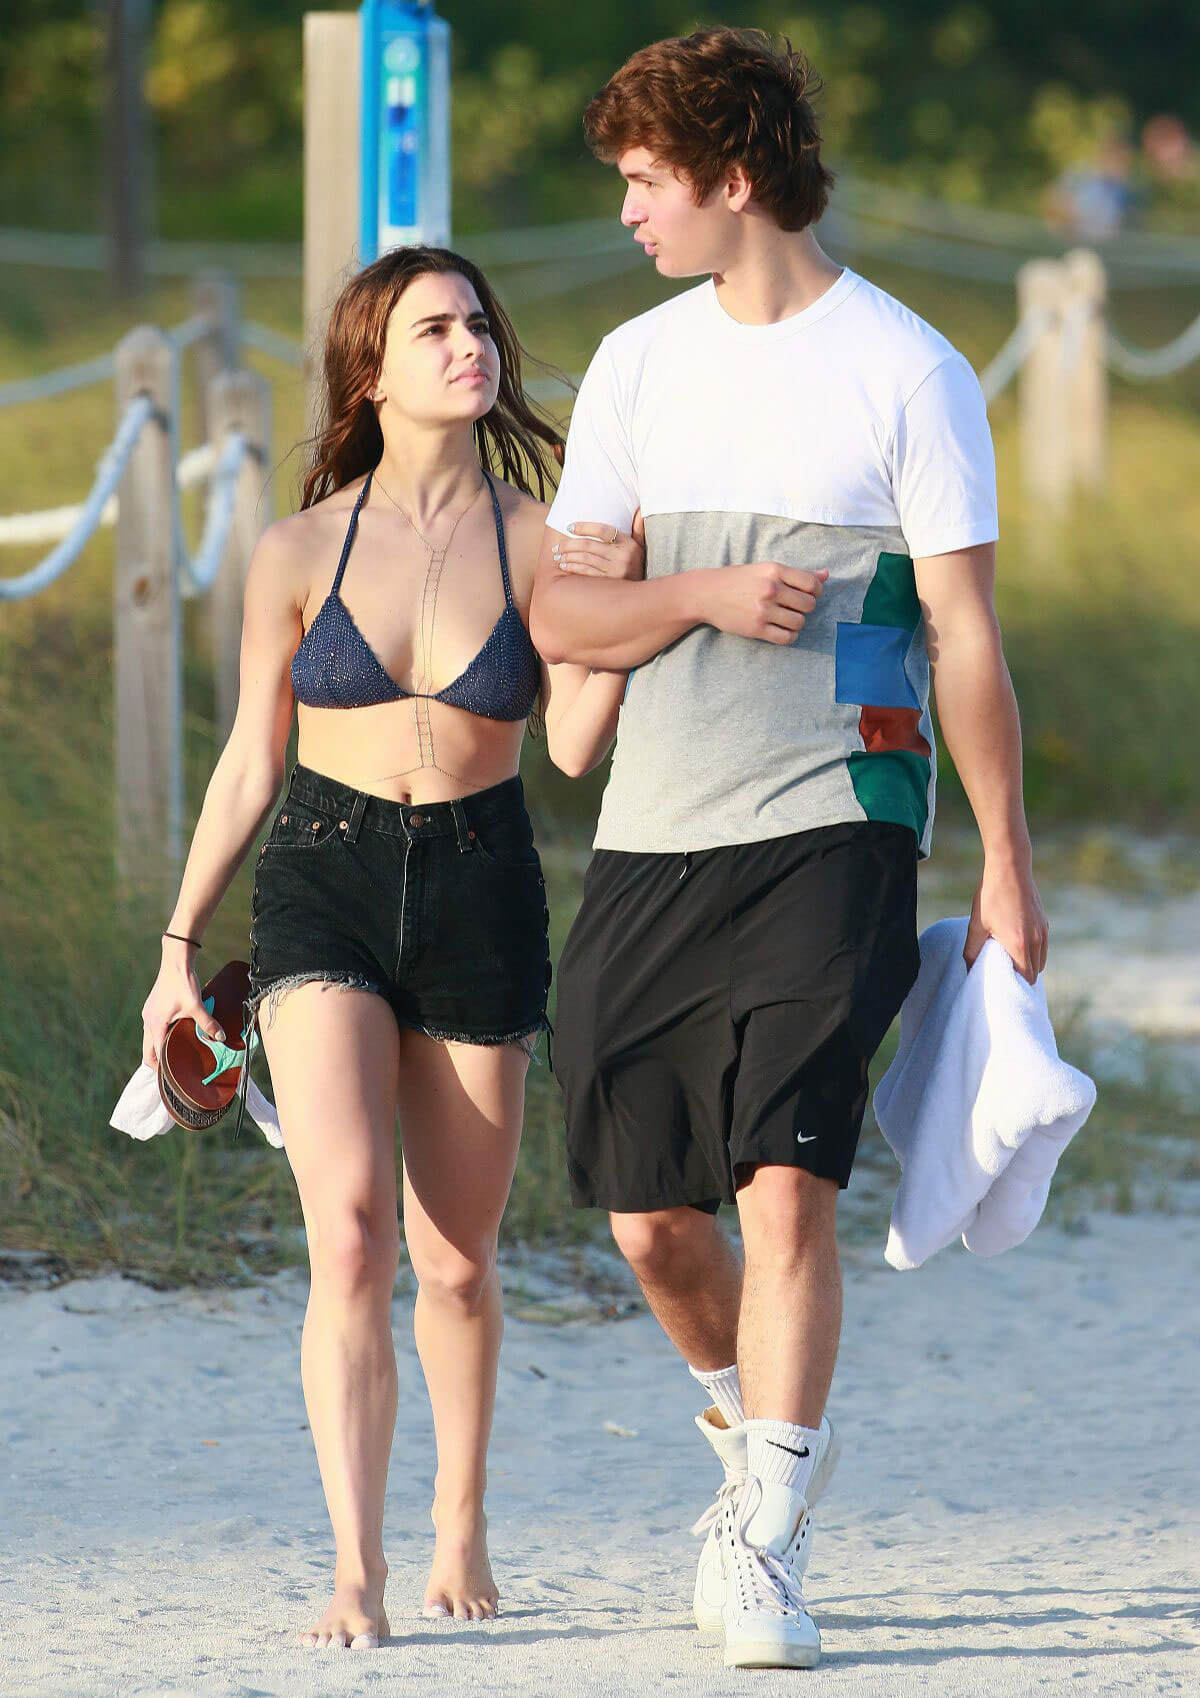 Violetta Komyshan in Bikini Top and Ansel Elgort Out in Miami Beach Images